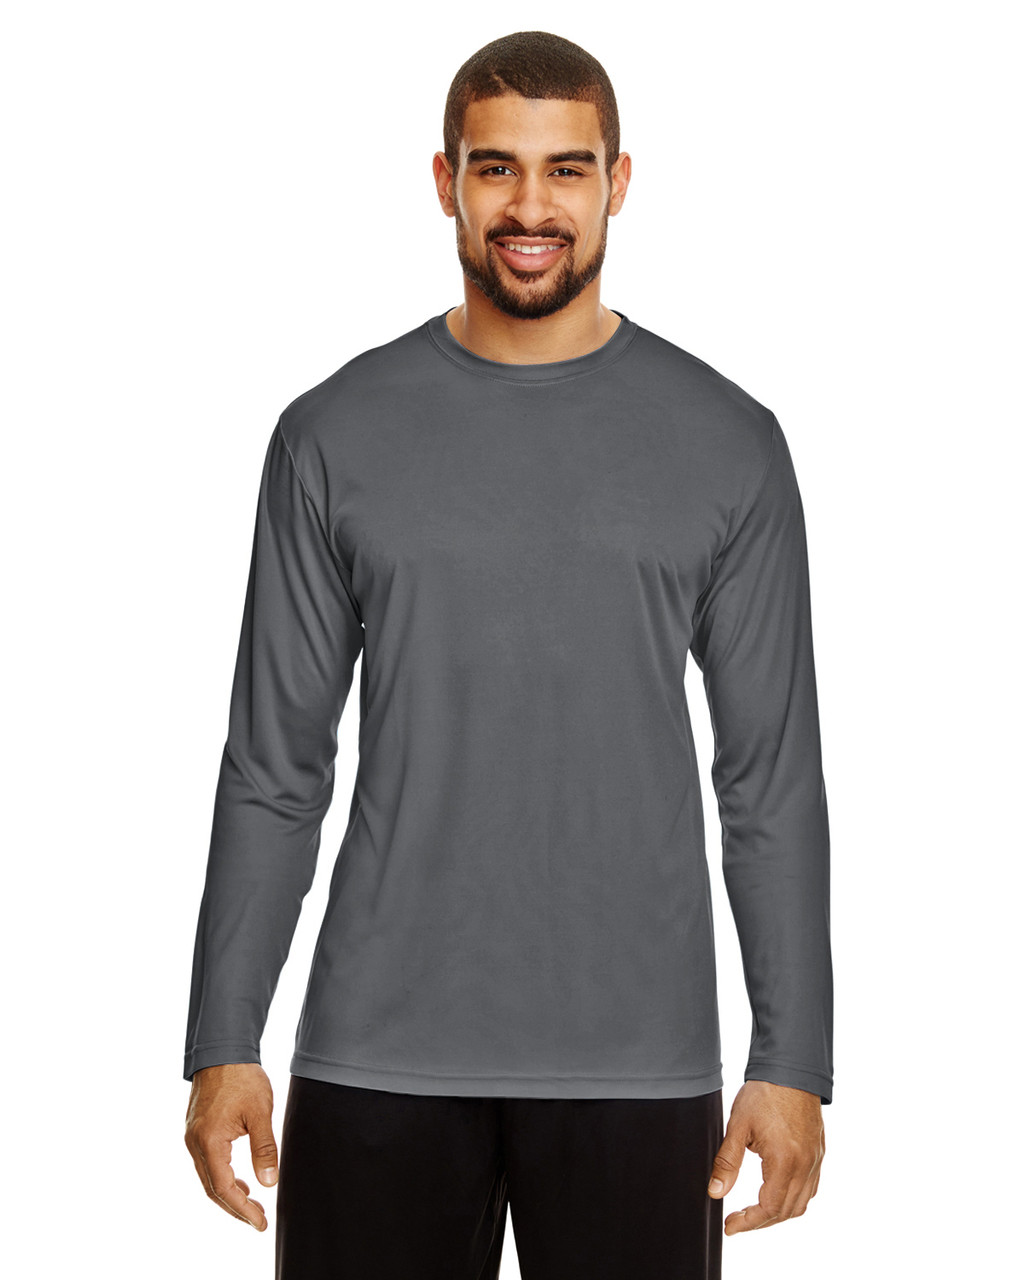 Sport Graphite - TT11L Team 365 Men's Zone Performance Long Sleeve T-Shirt | BlankClothing.ca